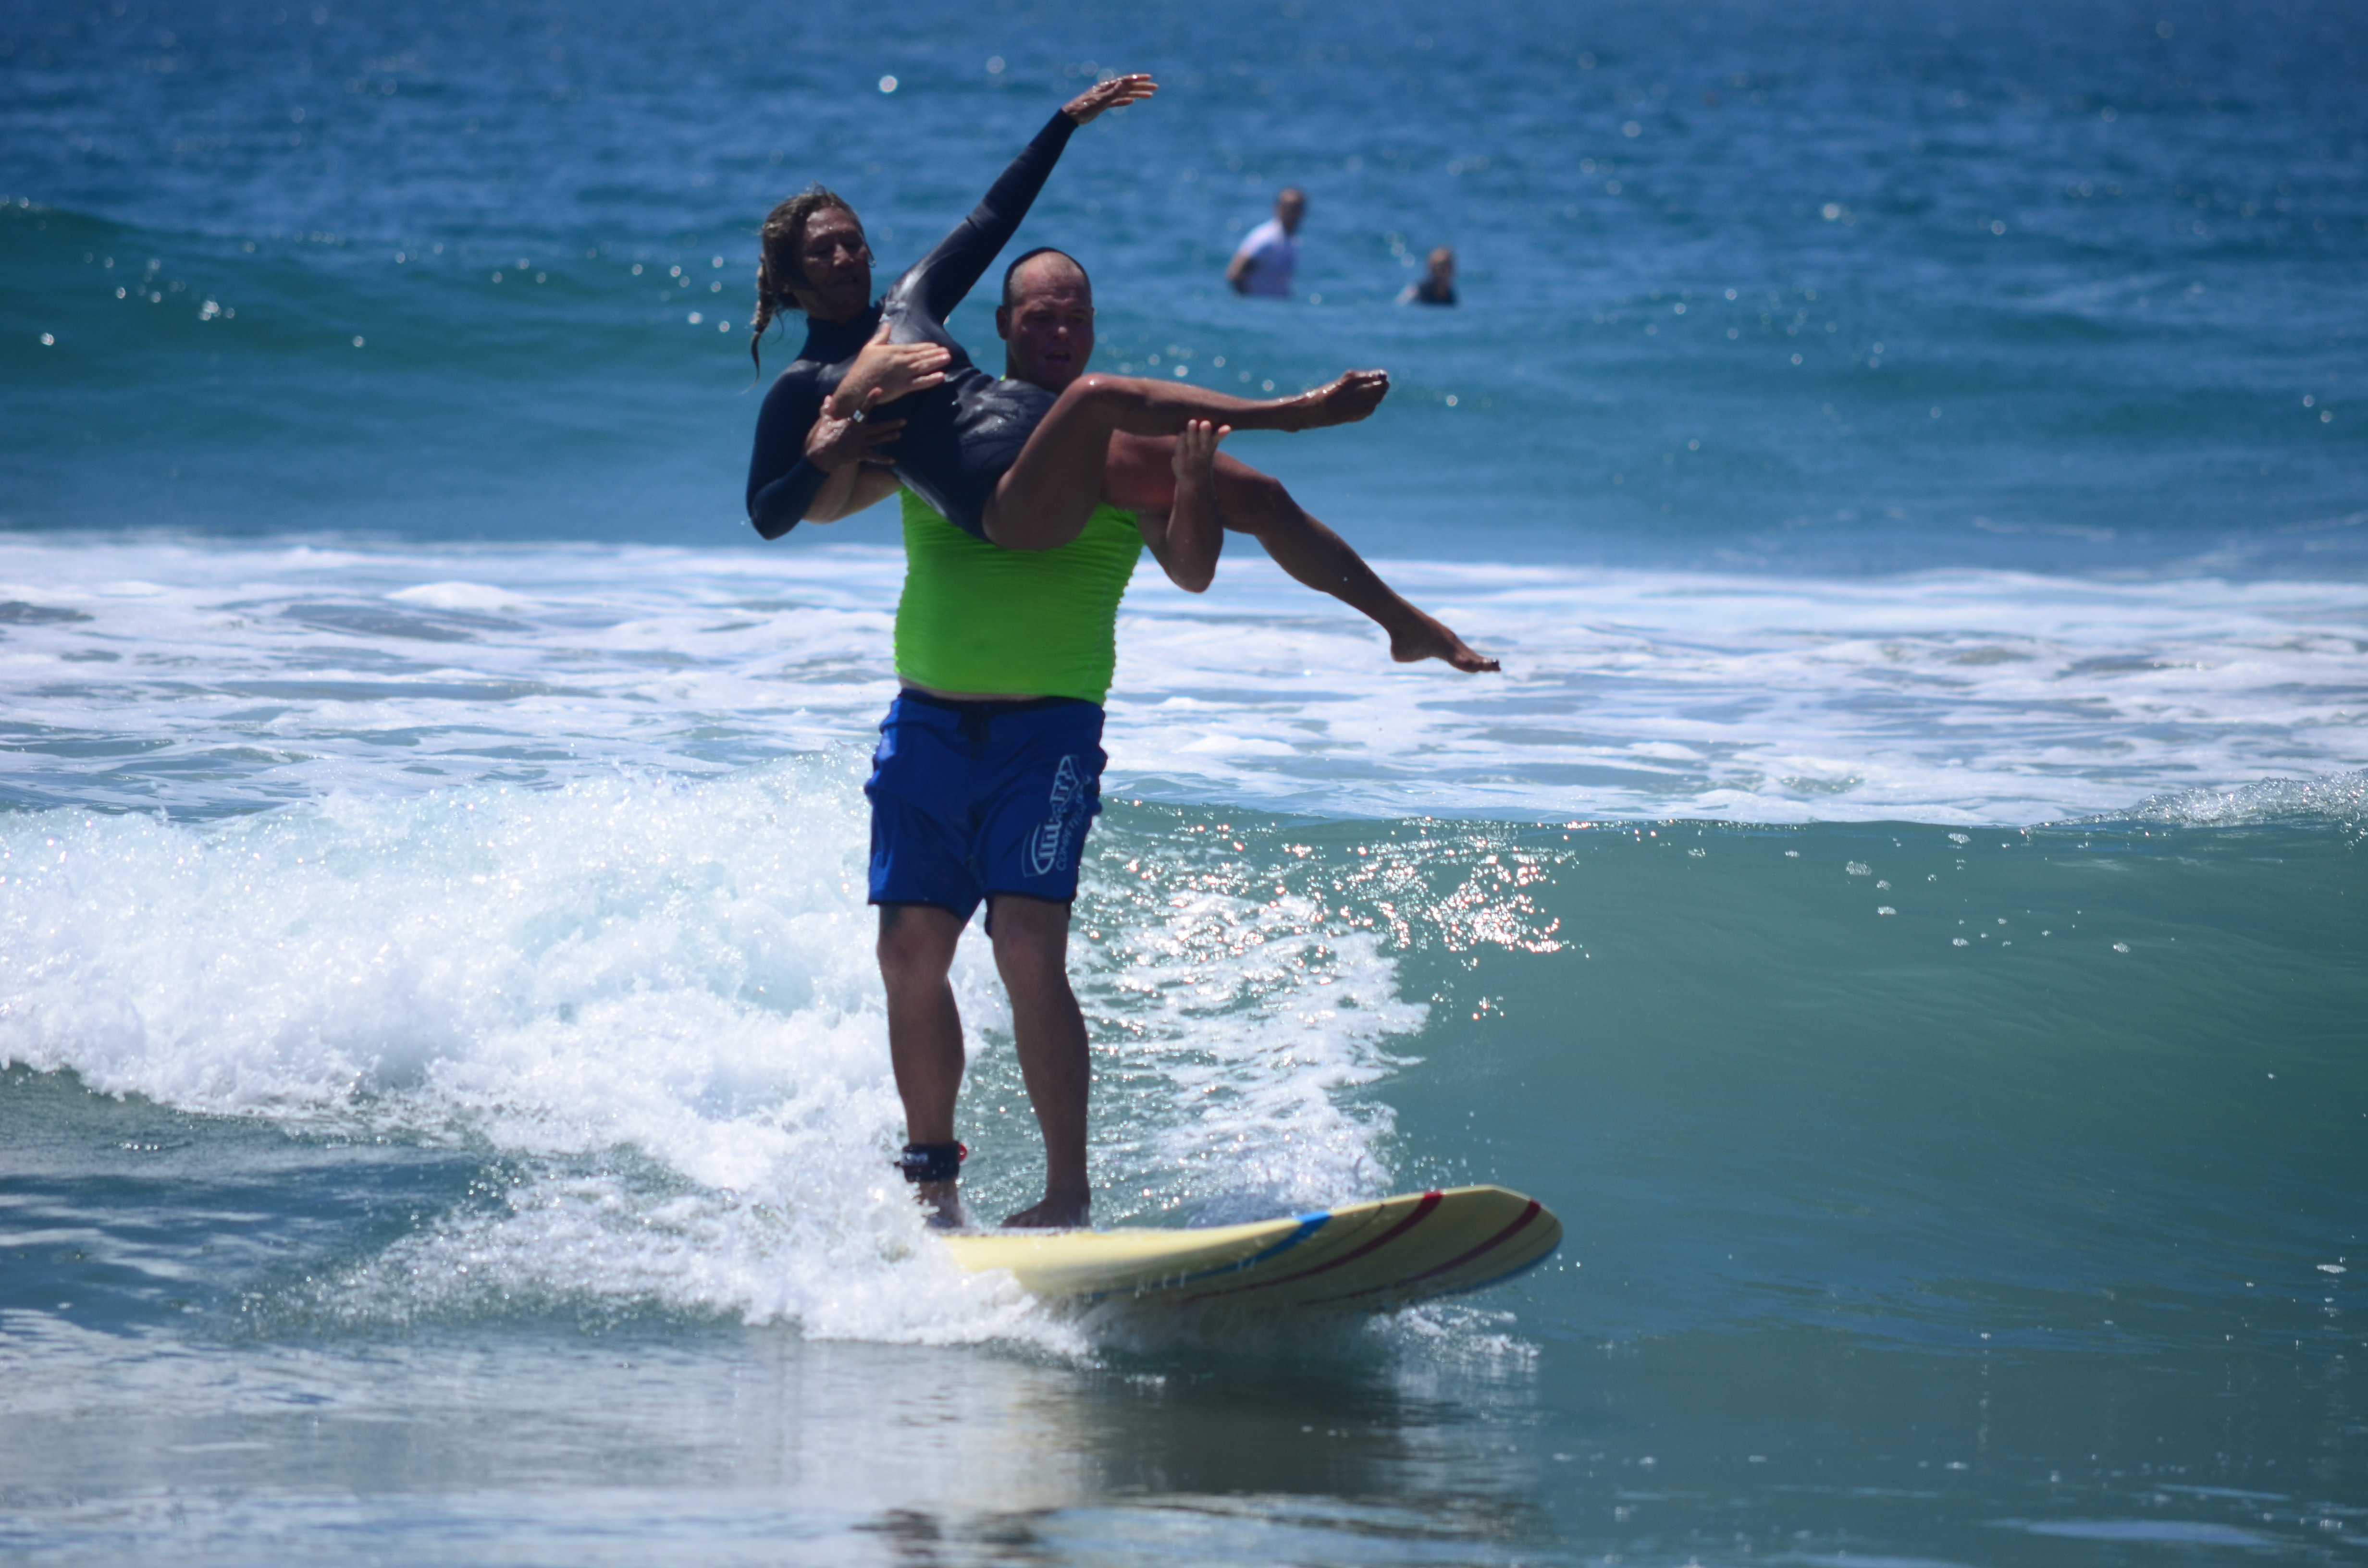 Surfers perform a lift during the amateur tandem surfing contest. Photo by Tony Cagala